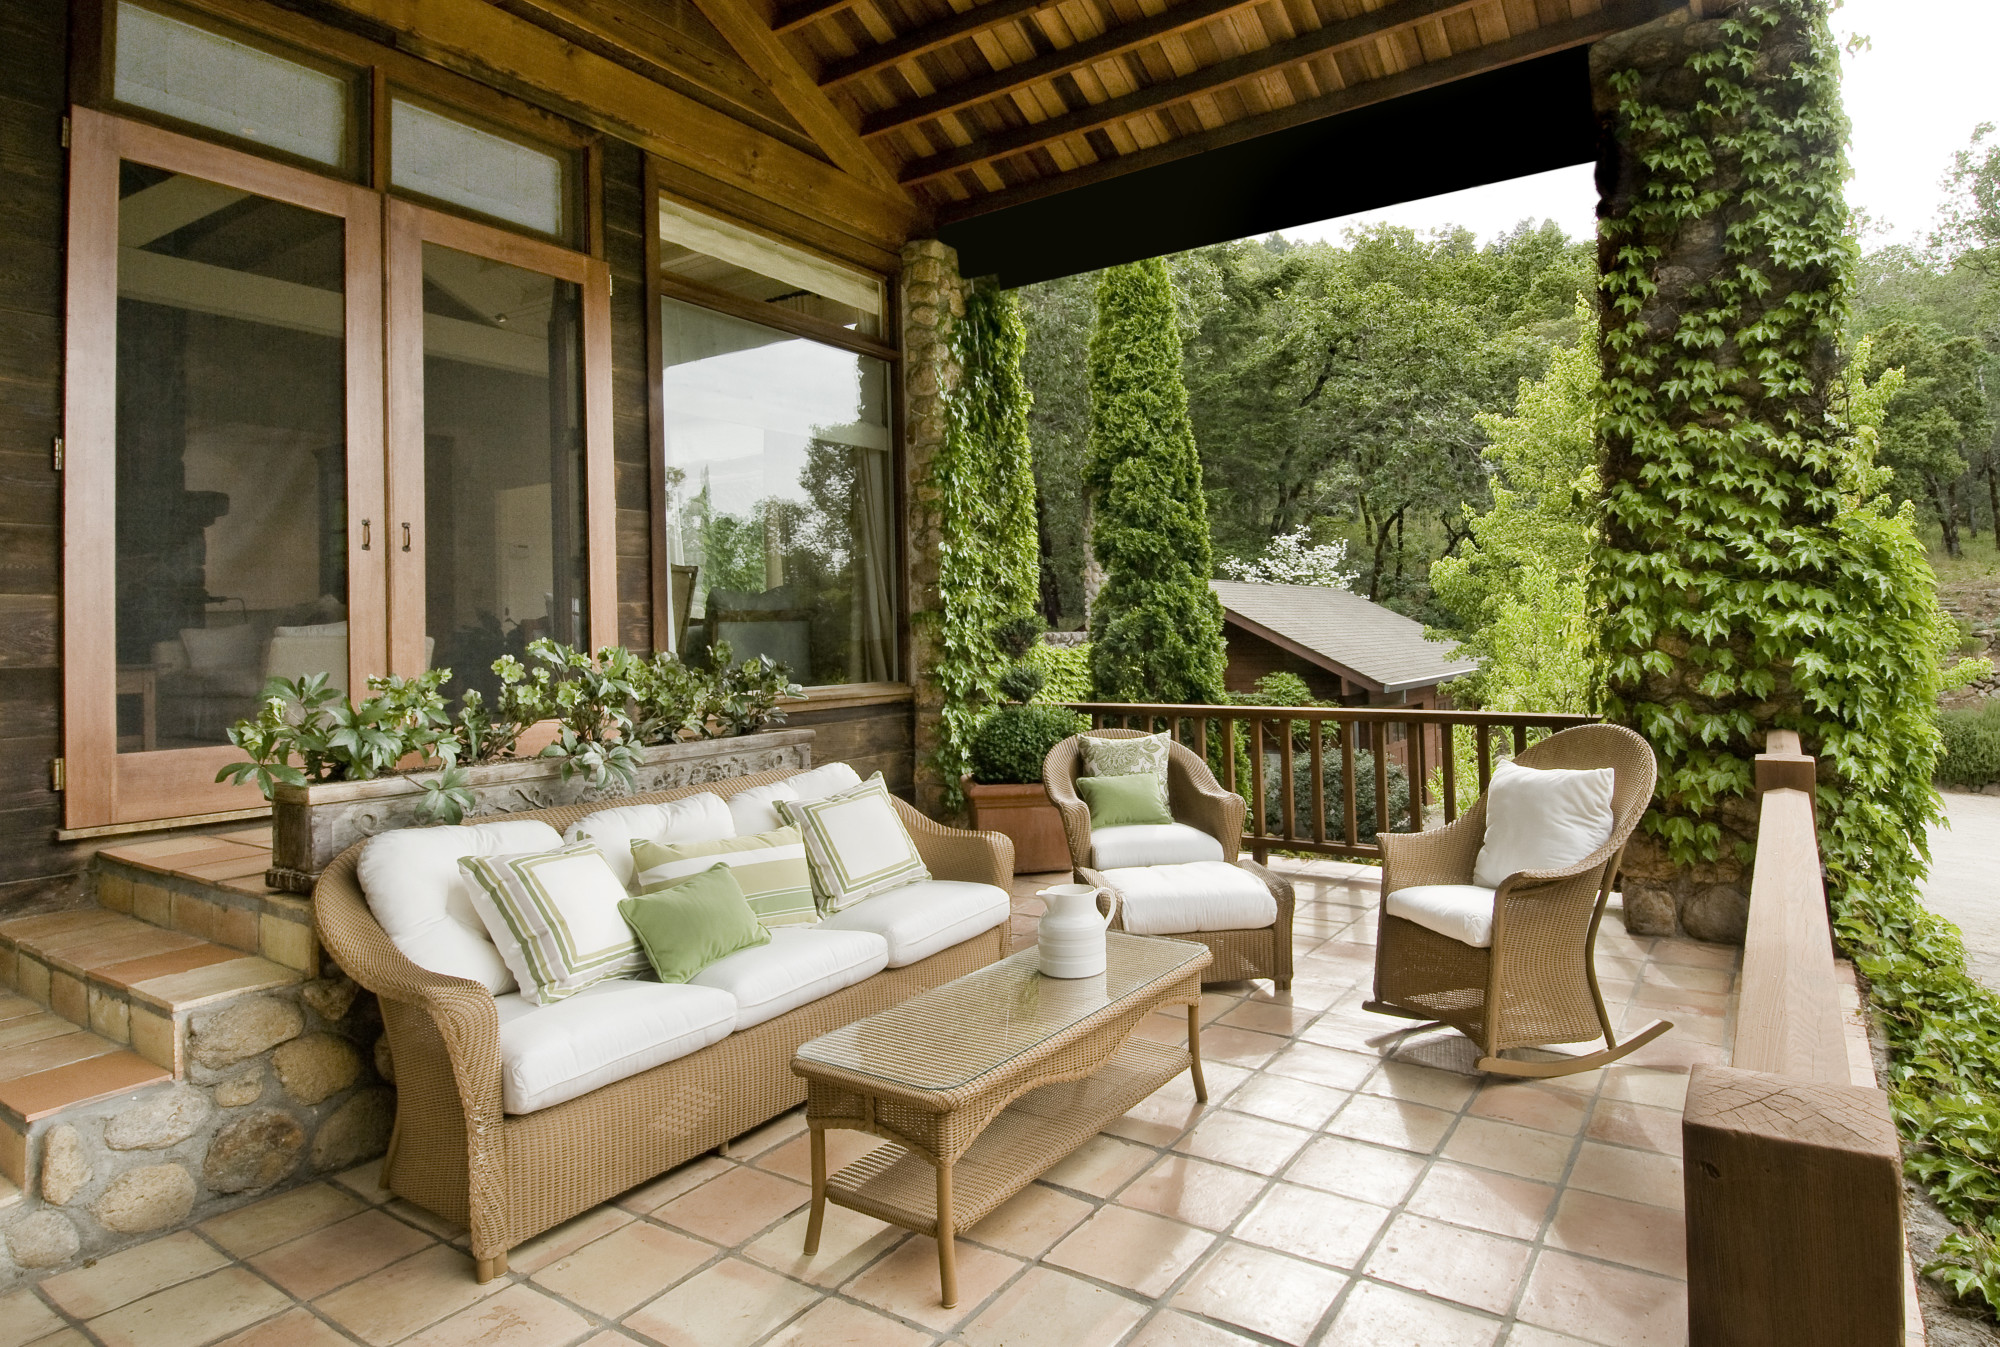 Spring Has Sprung! How to Enjoy Your Patio More